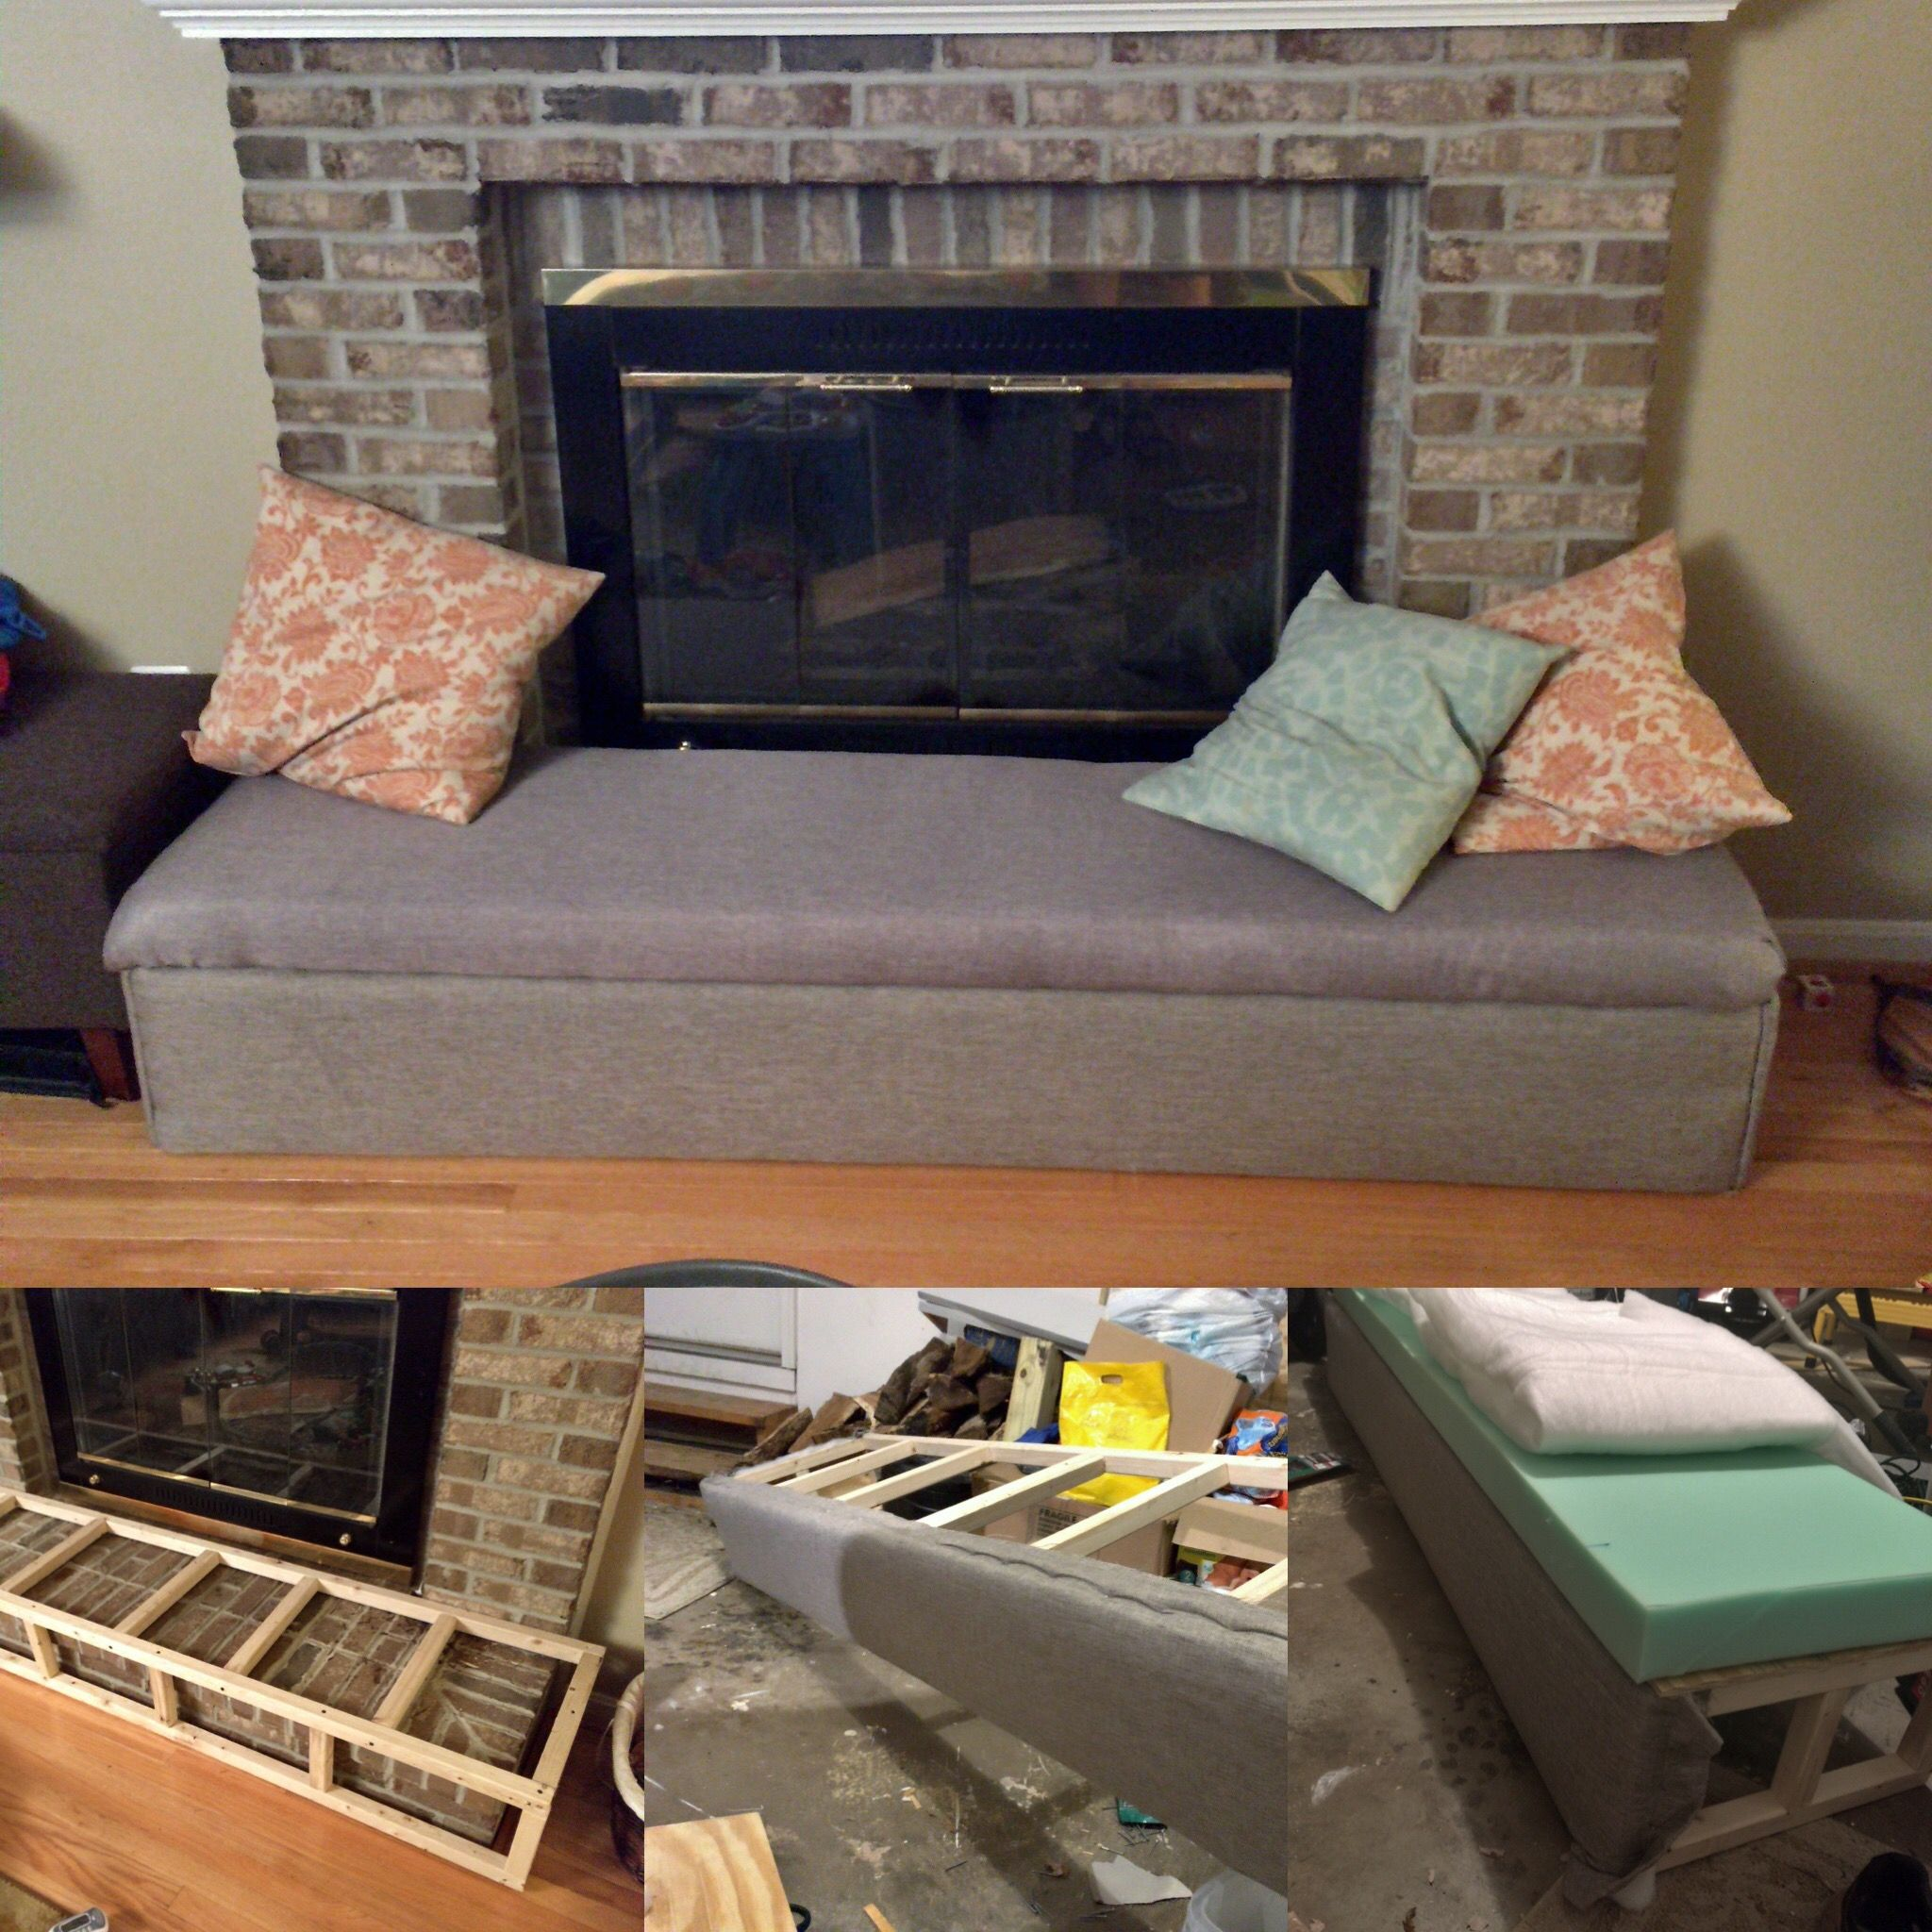 My Diy Fireplace Bumper Bench Seat That Slides Forward As A